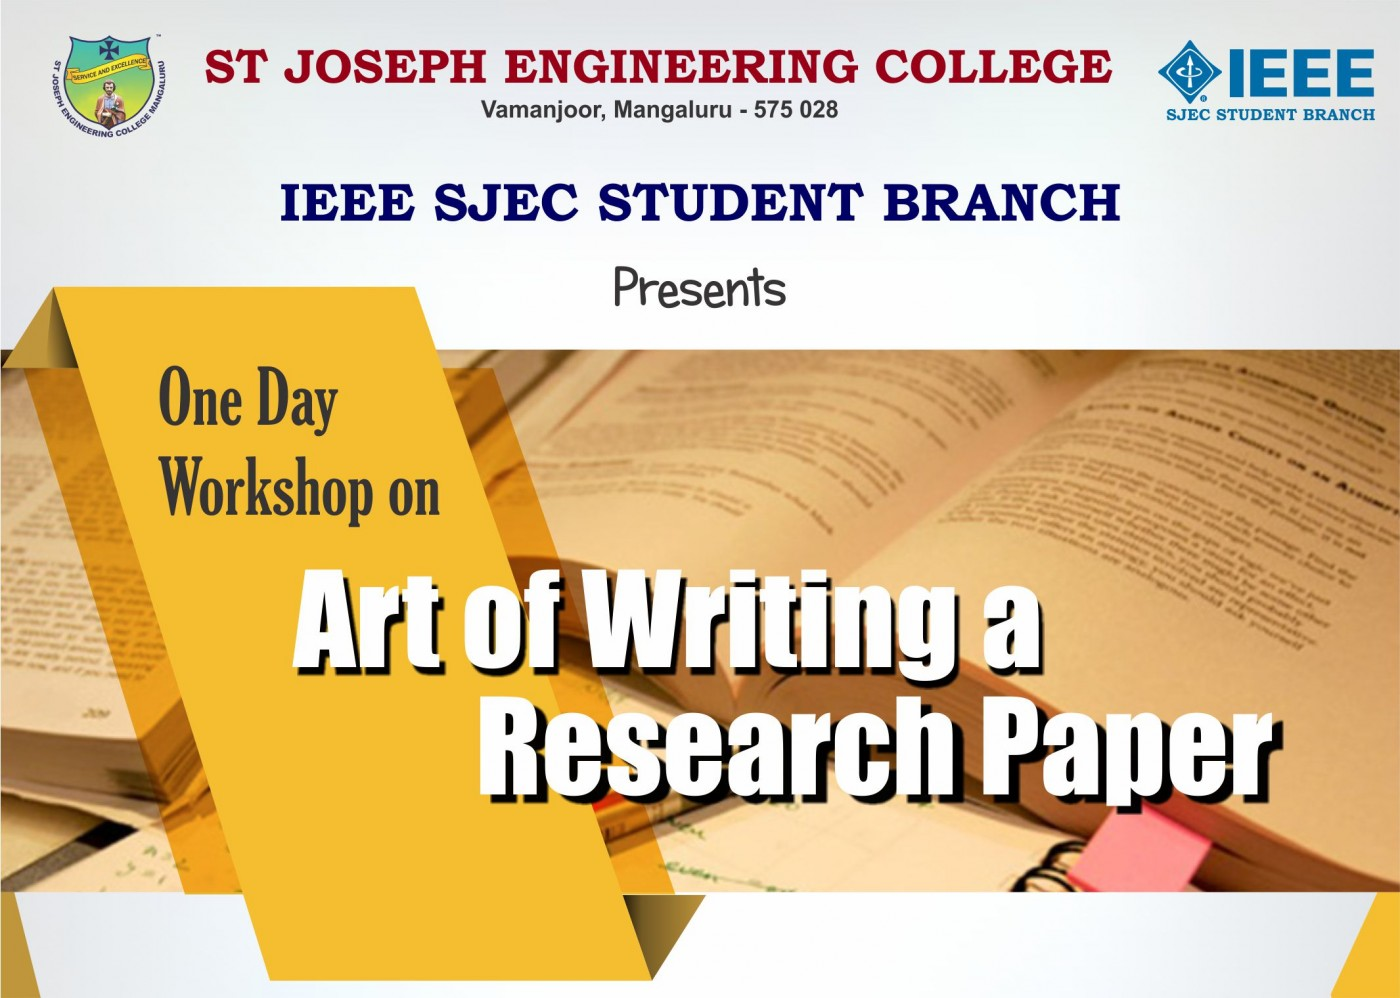 005 Workshop Banner Researchs Writing Fascinating Research Papers Paper Format Example Pdf Software Free Download Ppt 1400